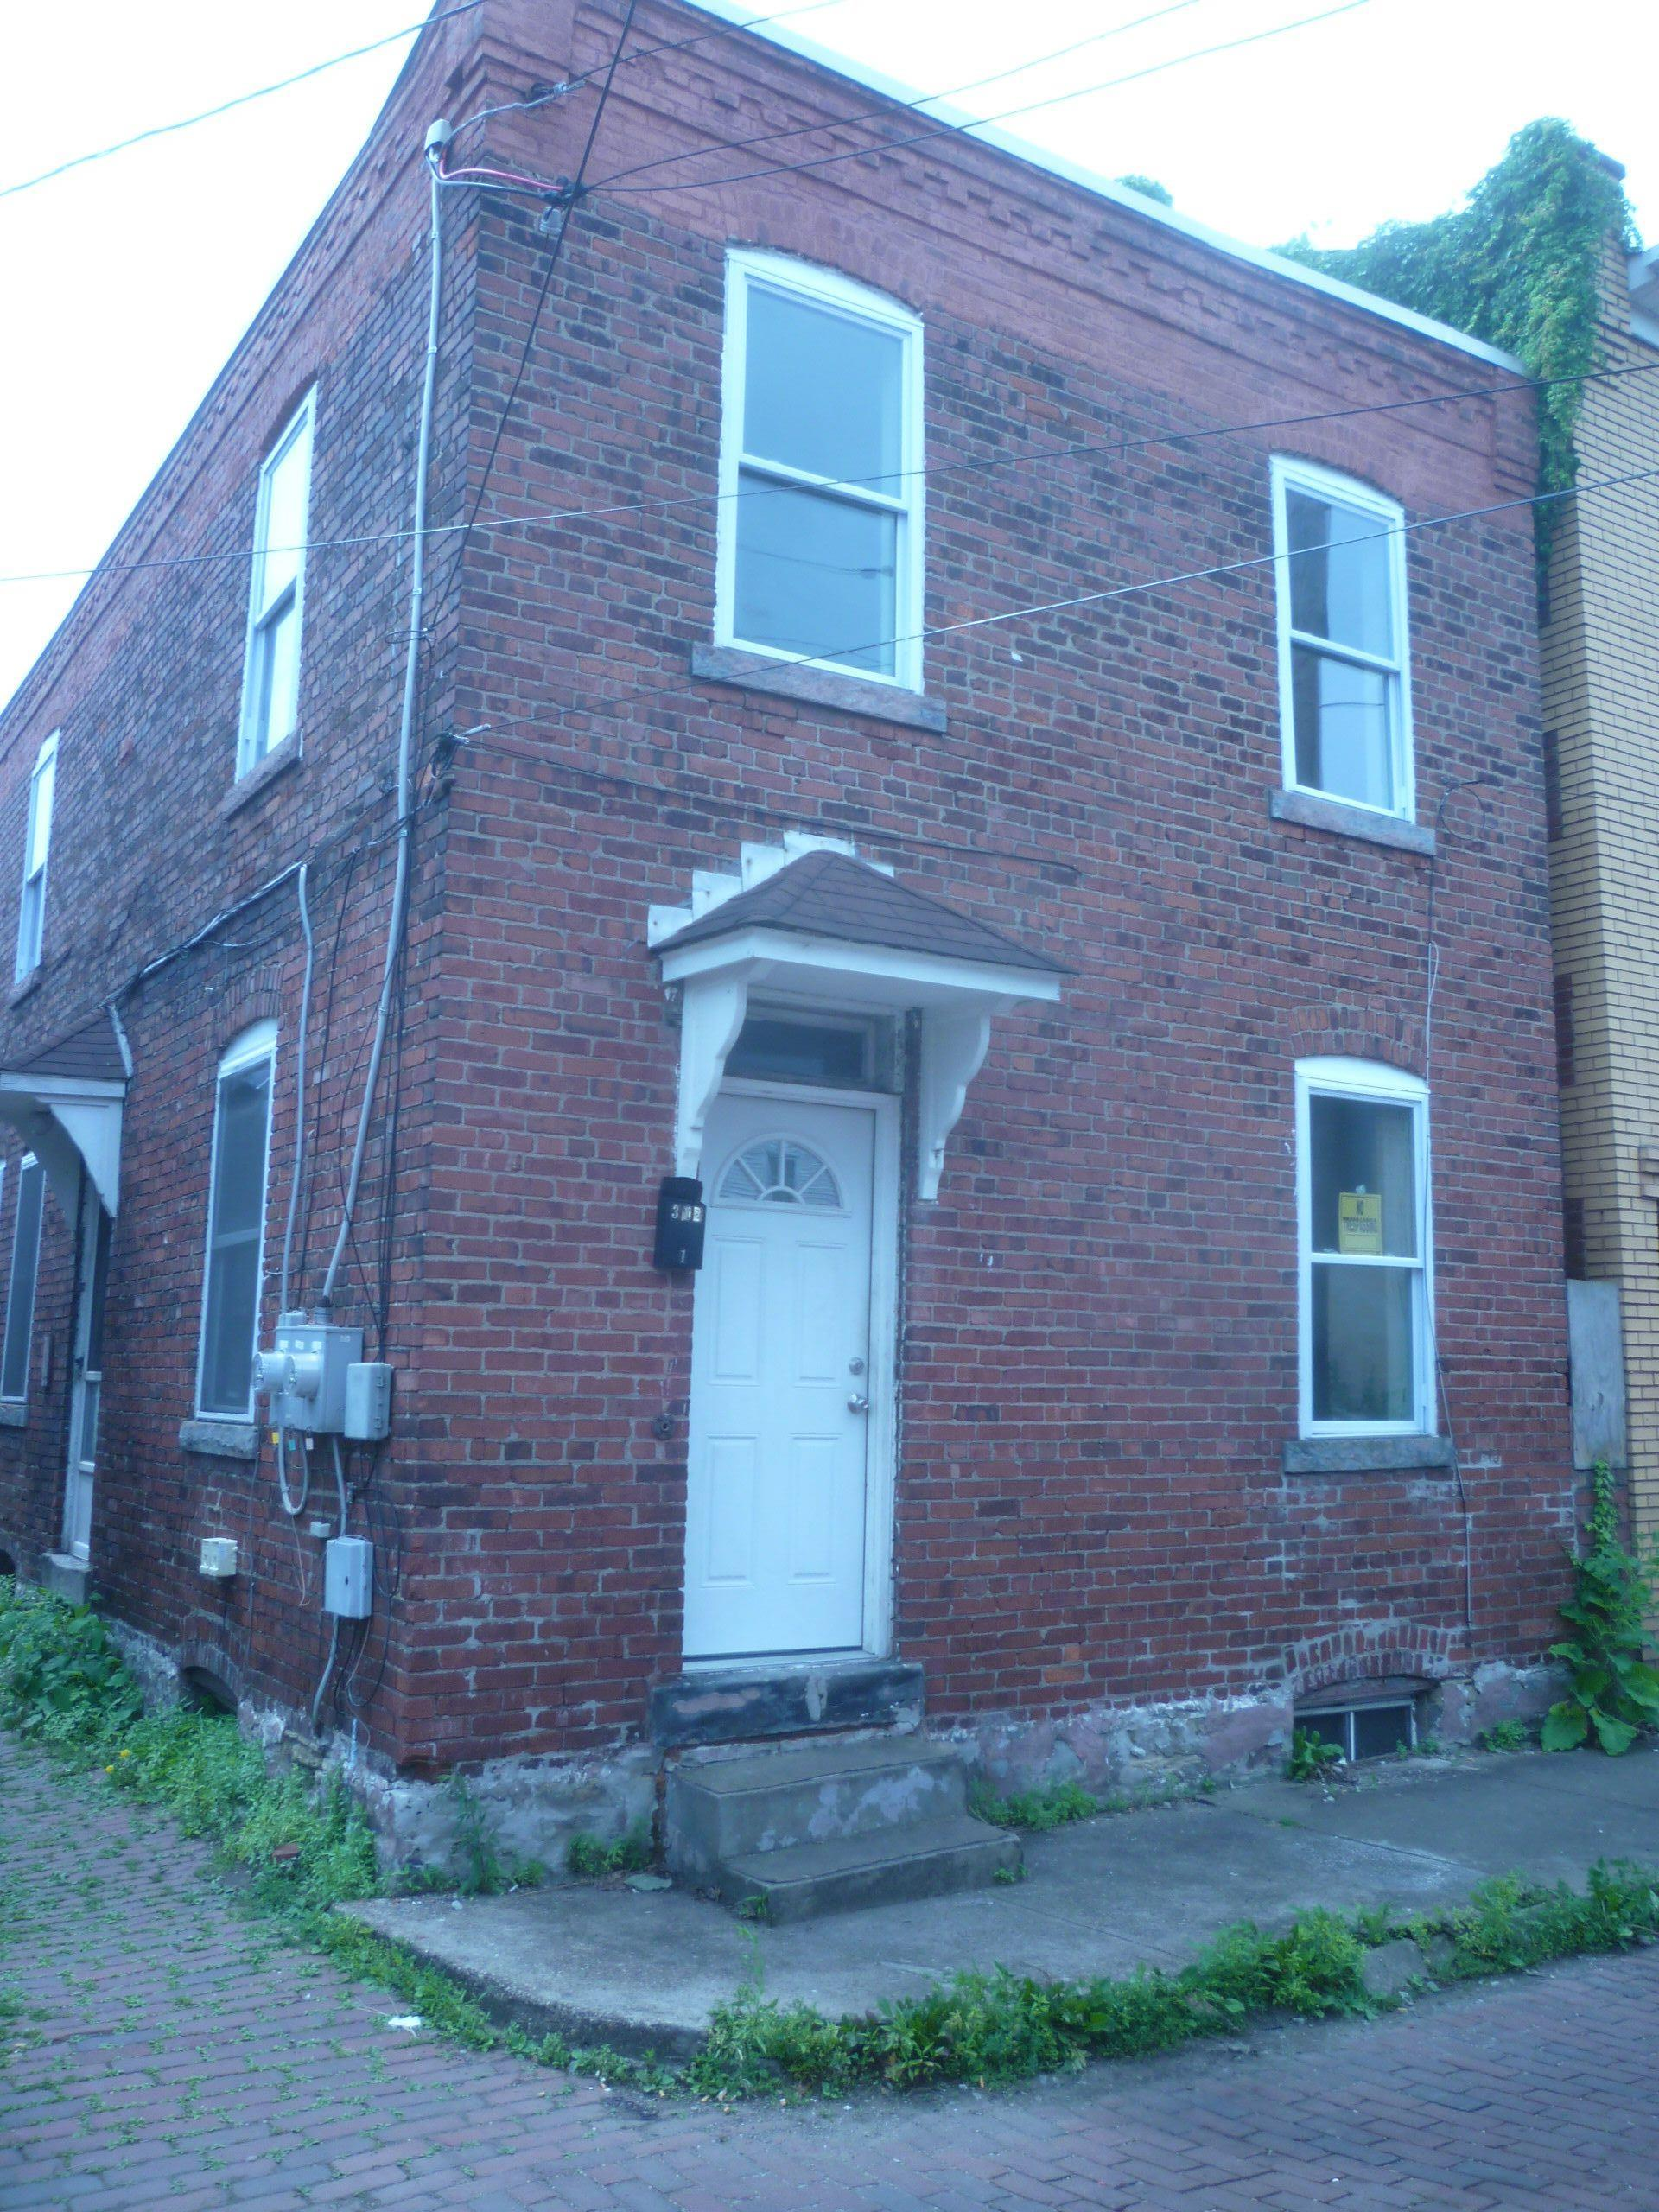 312 Campbell St (Image - 1)